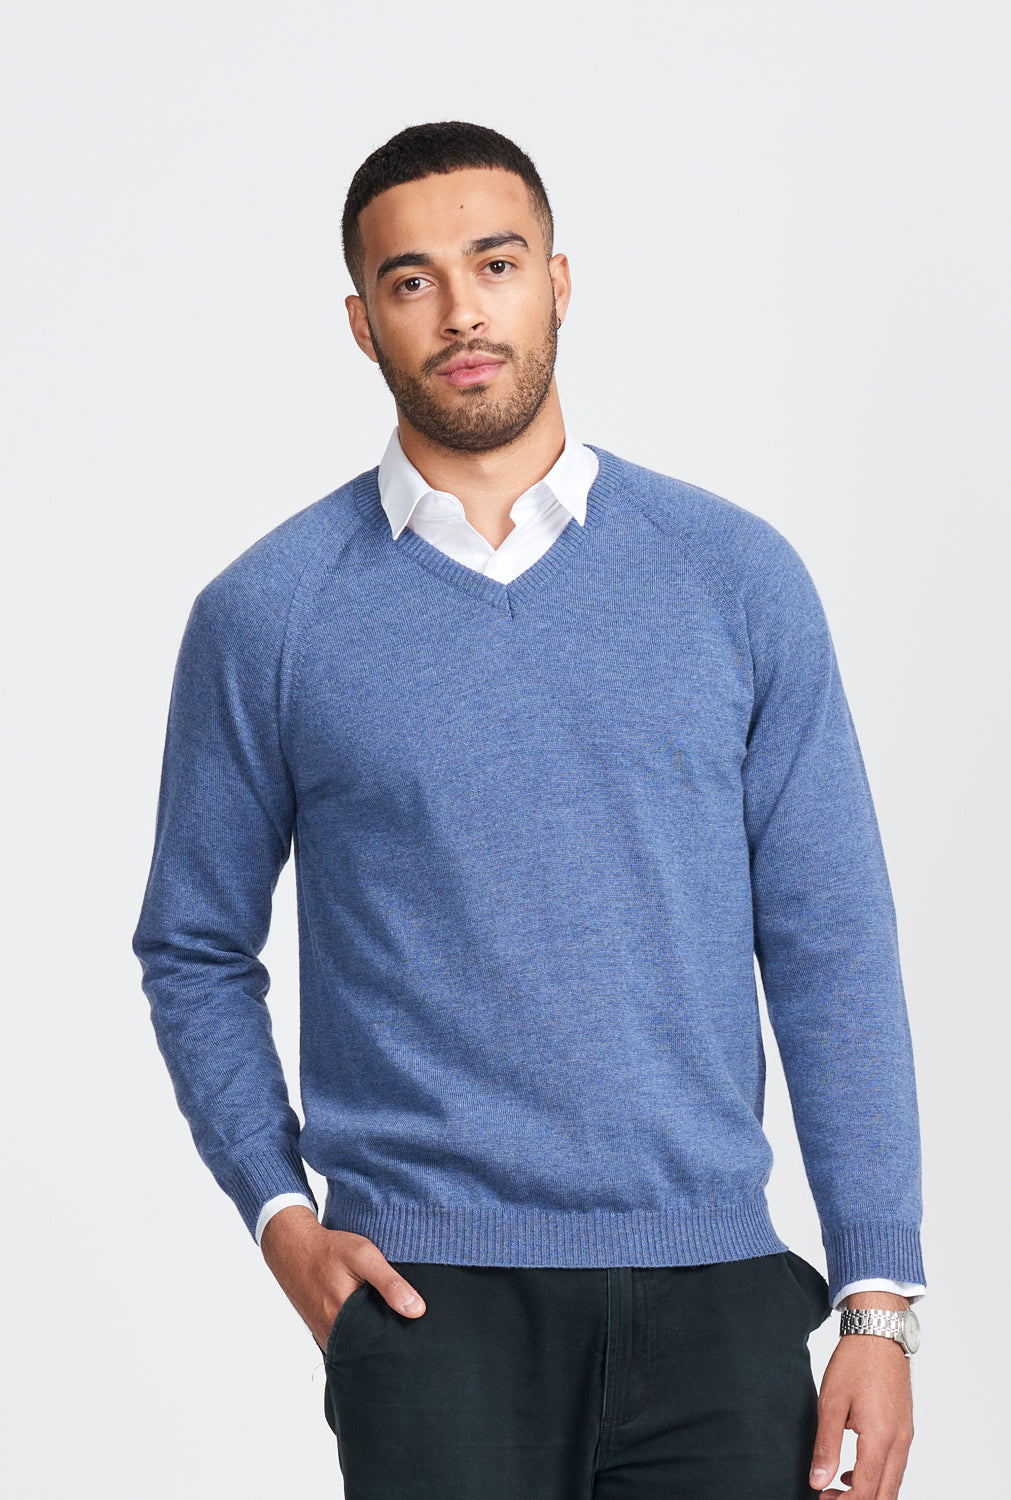 Mens V neck jumper in 100% Merino. Long sleeves in one colour.